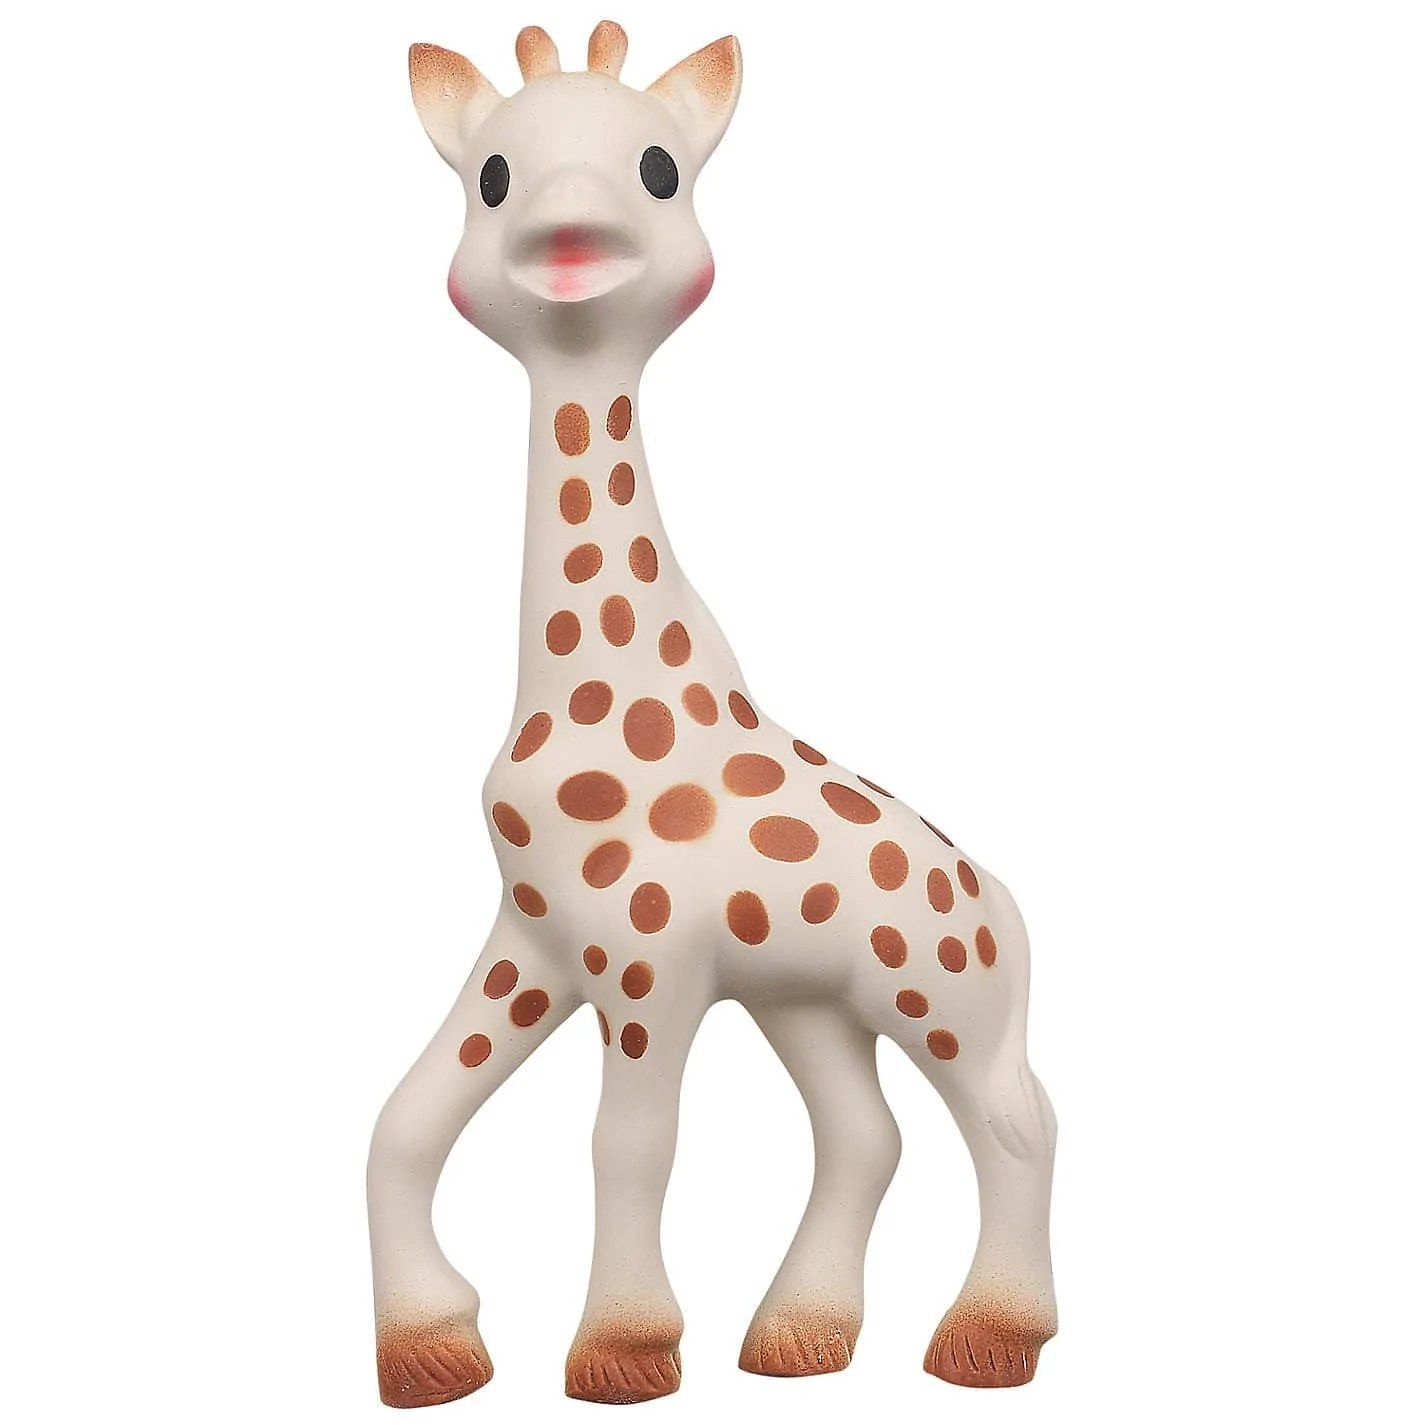 Youtube Newborn Babies First Bottle Sophie The Giraffe Australia 39;s Most Popular Teething Toy